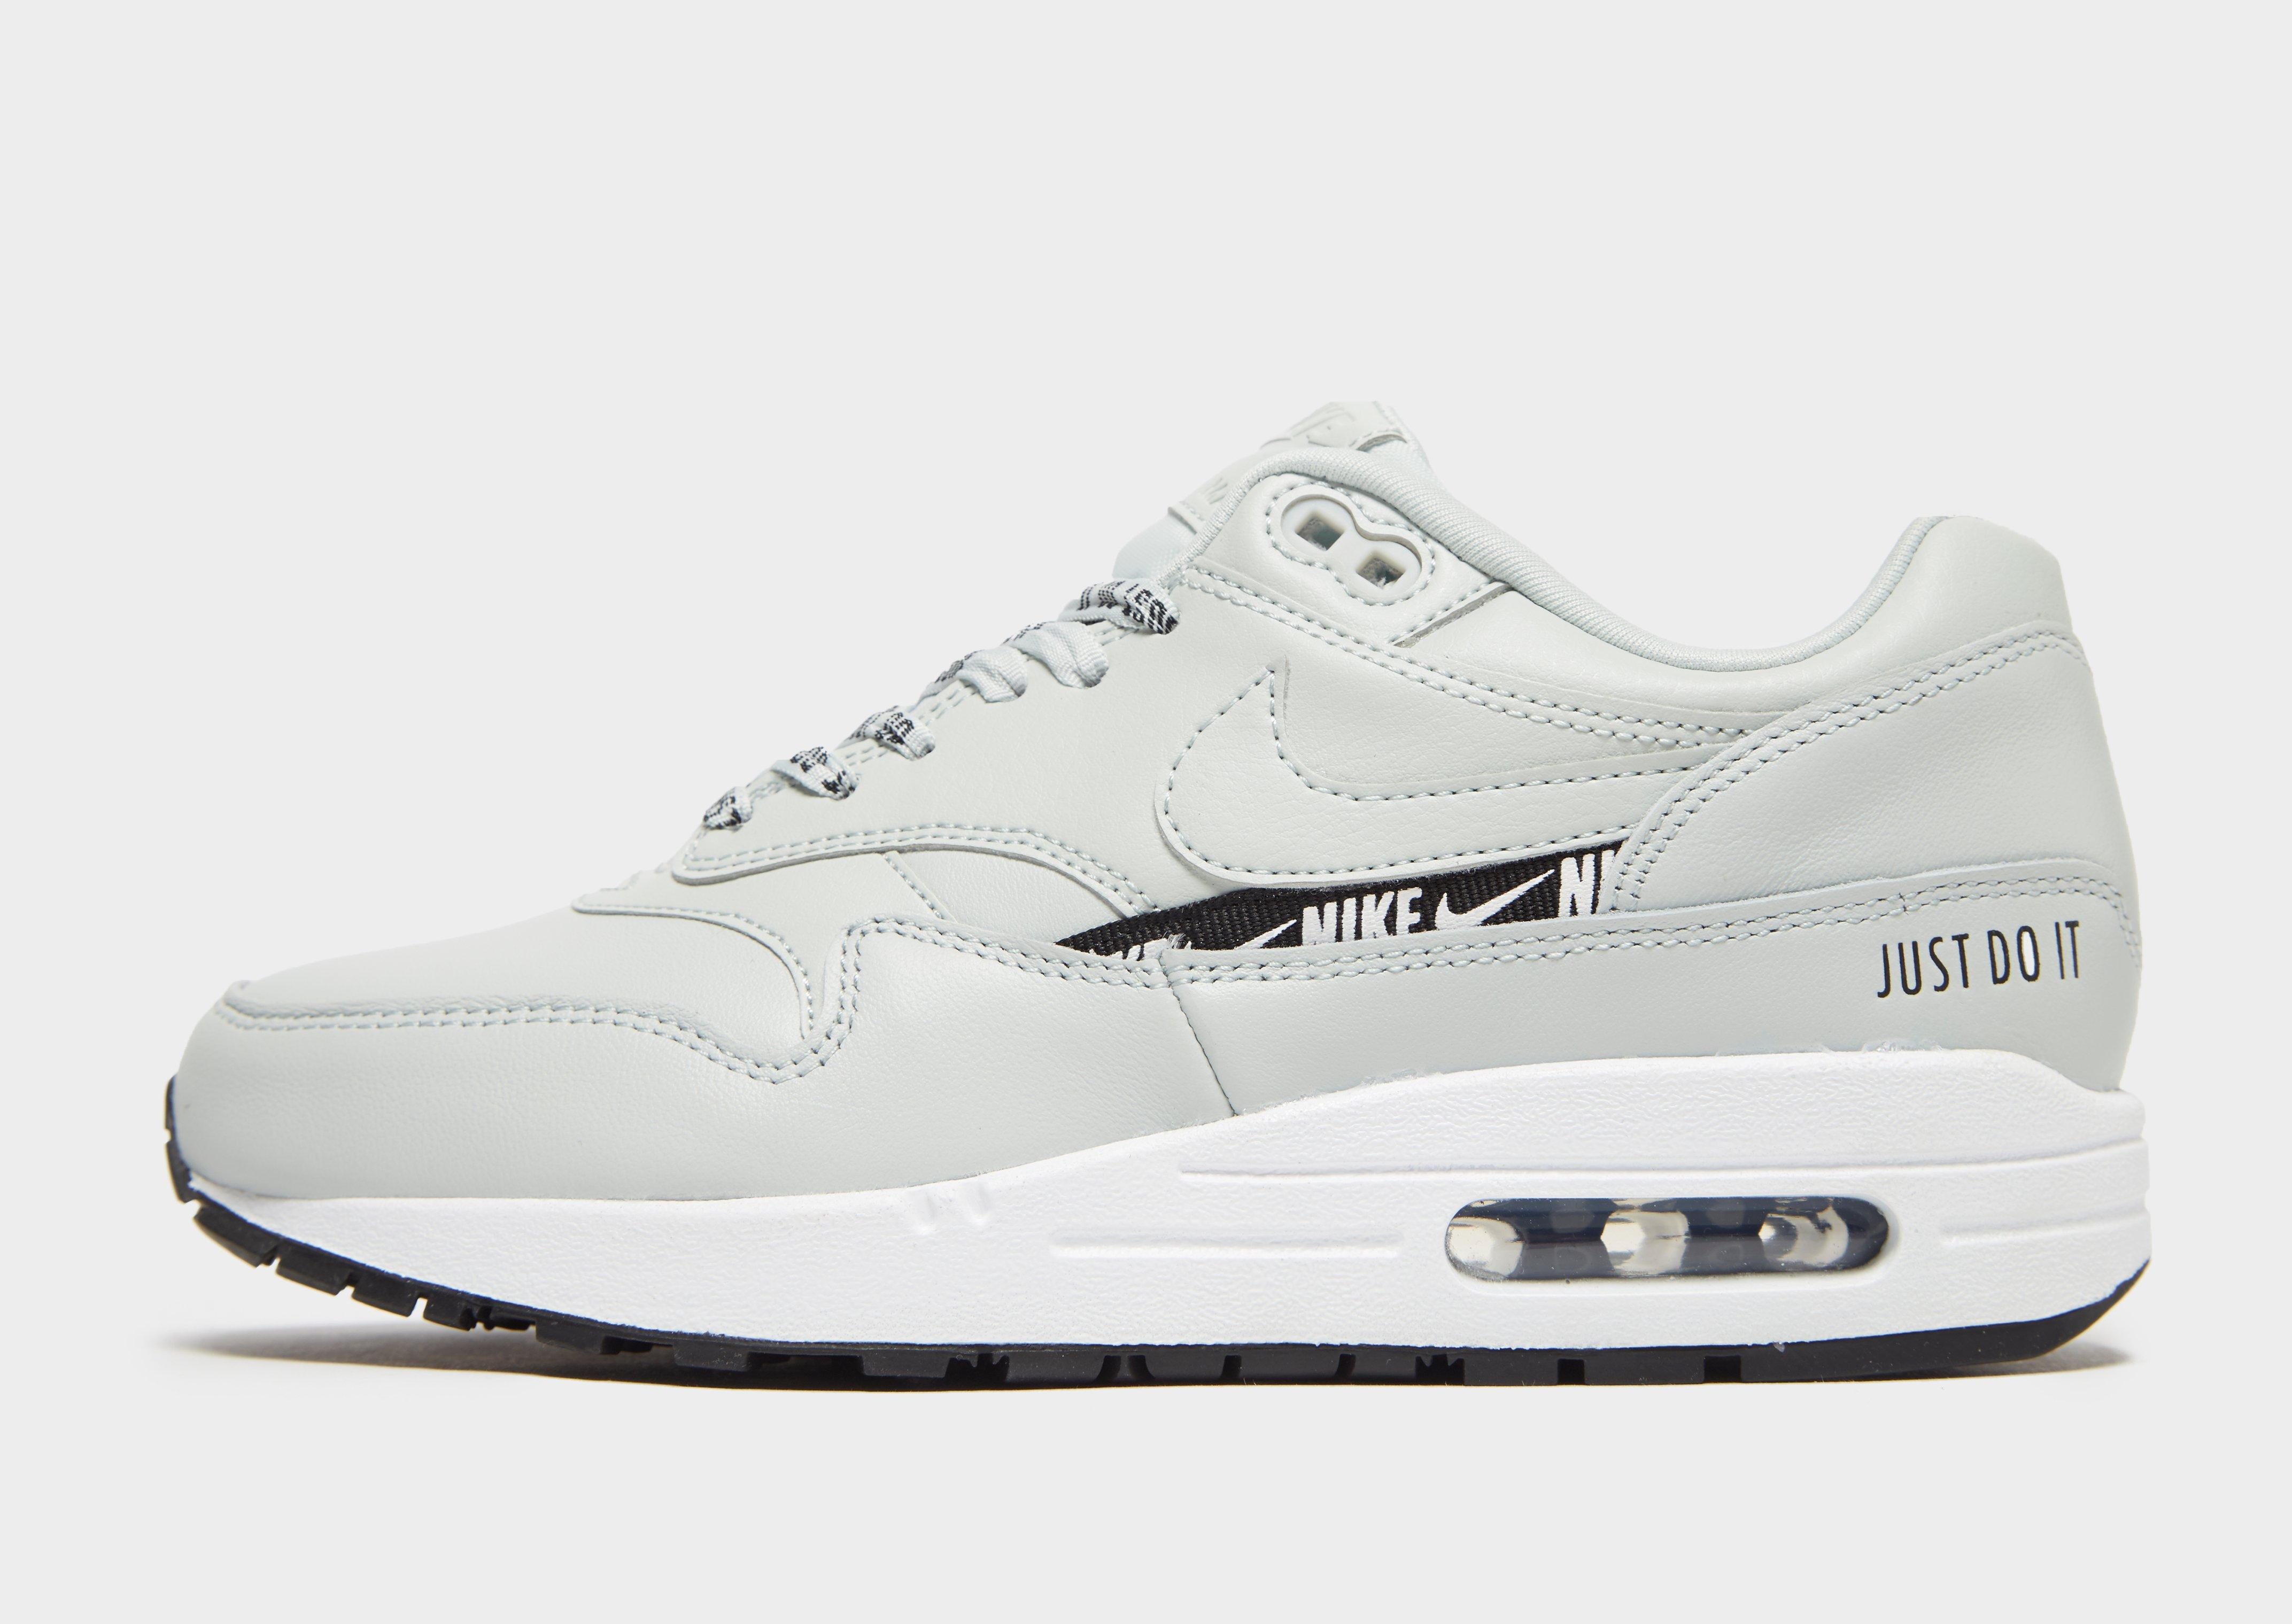 Nike Leather Air Max 1 Se W in Grey/Black (Gray) - Lyst